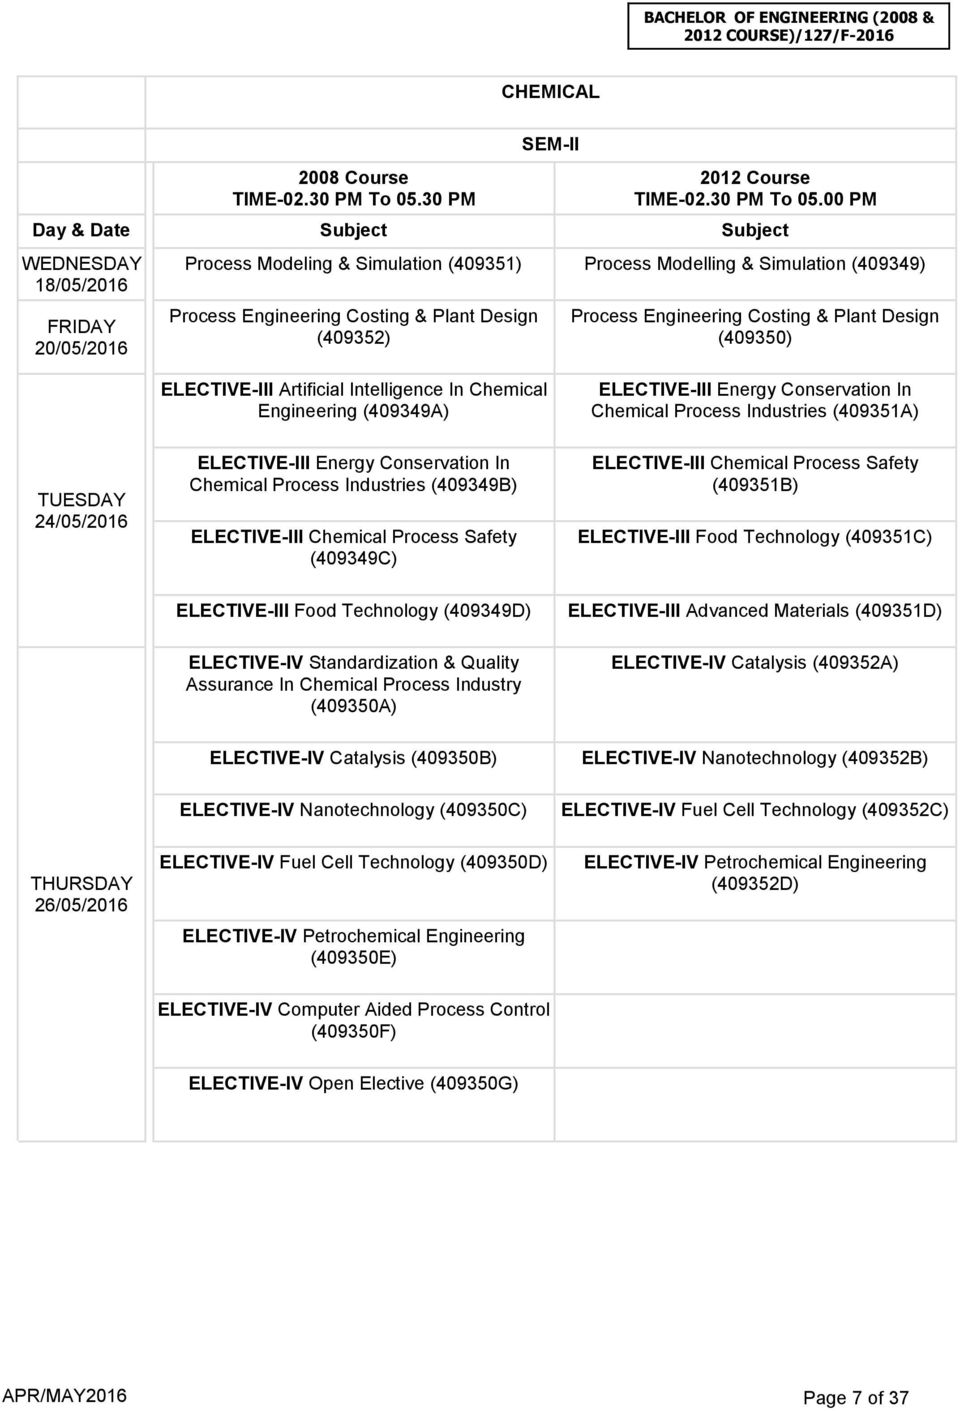 ELECTIVE-IV Standardization & Quality Assurance In Chemical Process Industry (409350A) ELECTIVE-IV Catalysis (409350B) ELECTIVE-IV Nanotechnology (409350C) ELECTIVE-IV Fuel Cell Technology (409350D)